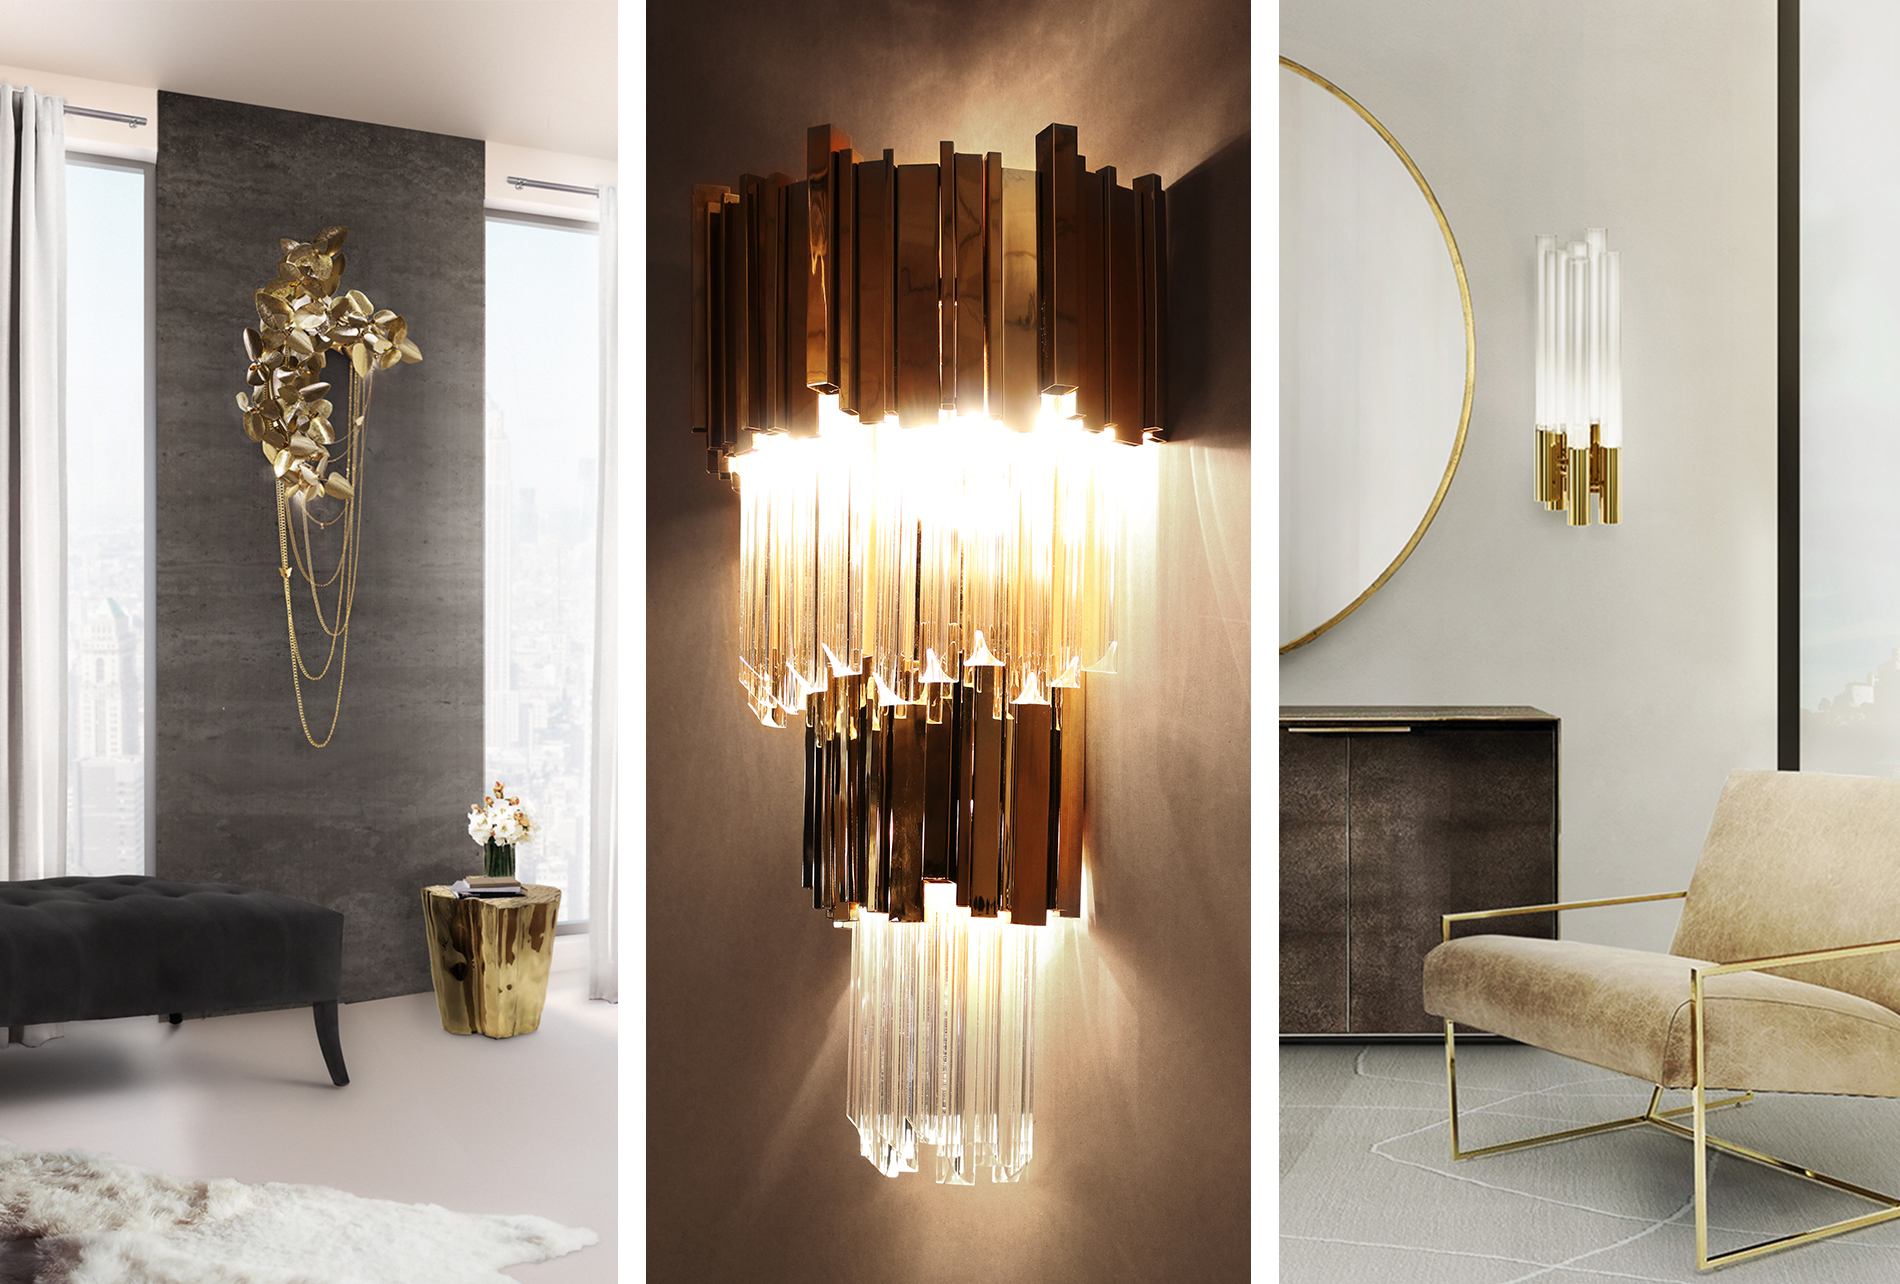 Luxury design: wall lights by Luxxu to create a glamorous decor Light + Building 2018 LUXXU Modern Lamps Brings Endless Inspiration To Light + Building 2018 Luxxu Wall Lamps Light + Building 2018 LUXXU Modern Lamps Brings Endless Inspiration To Light + Building 2018 Luxxu Wall Lamps